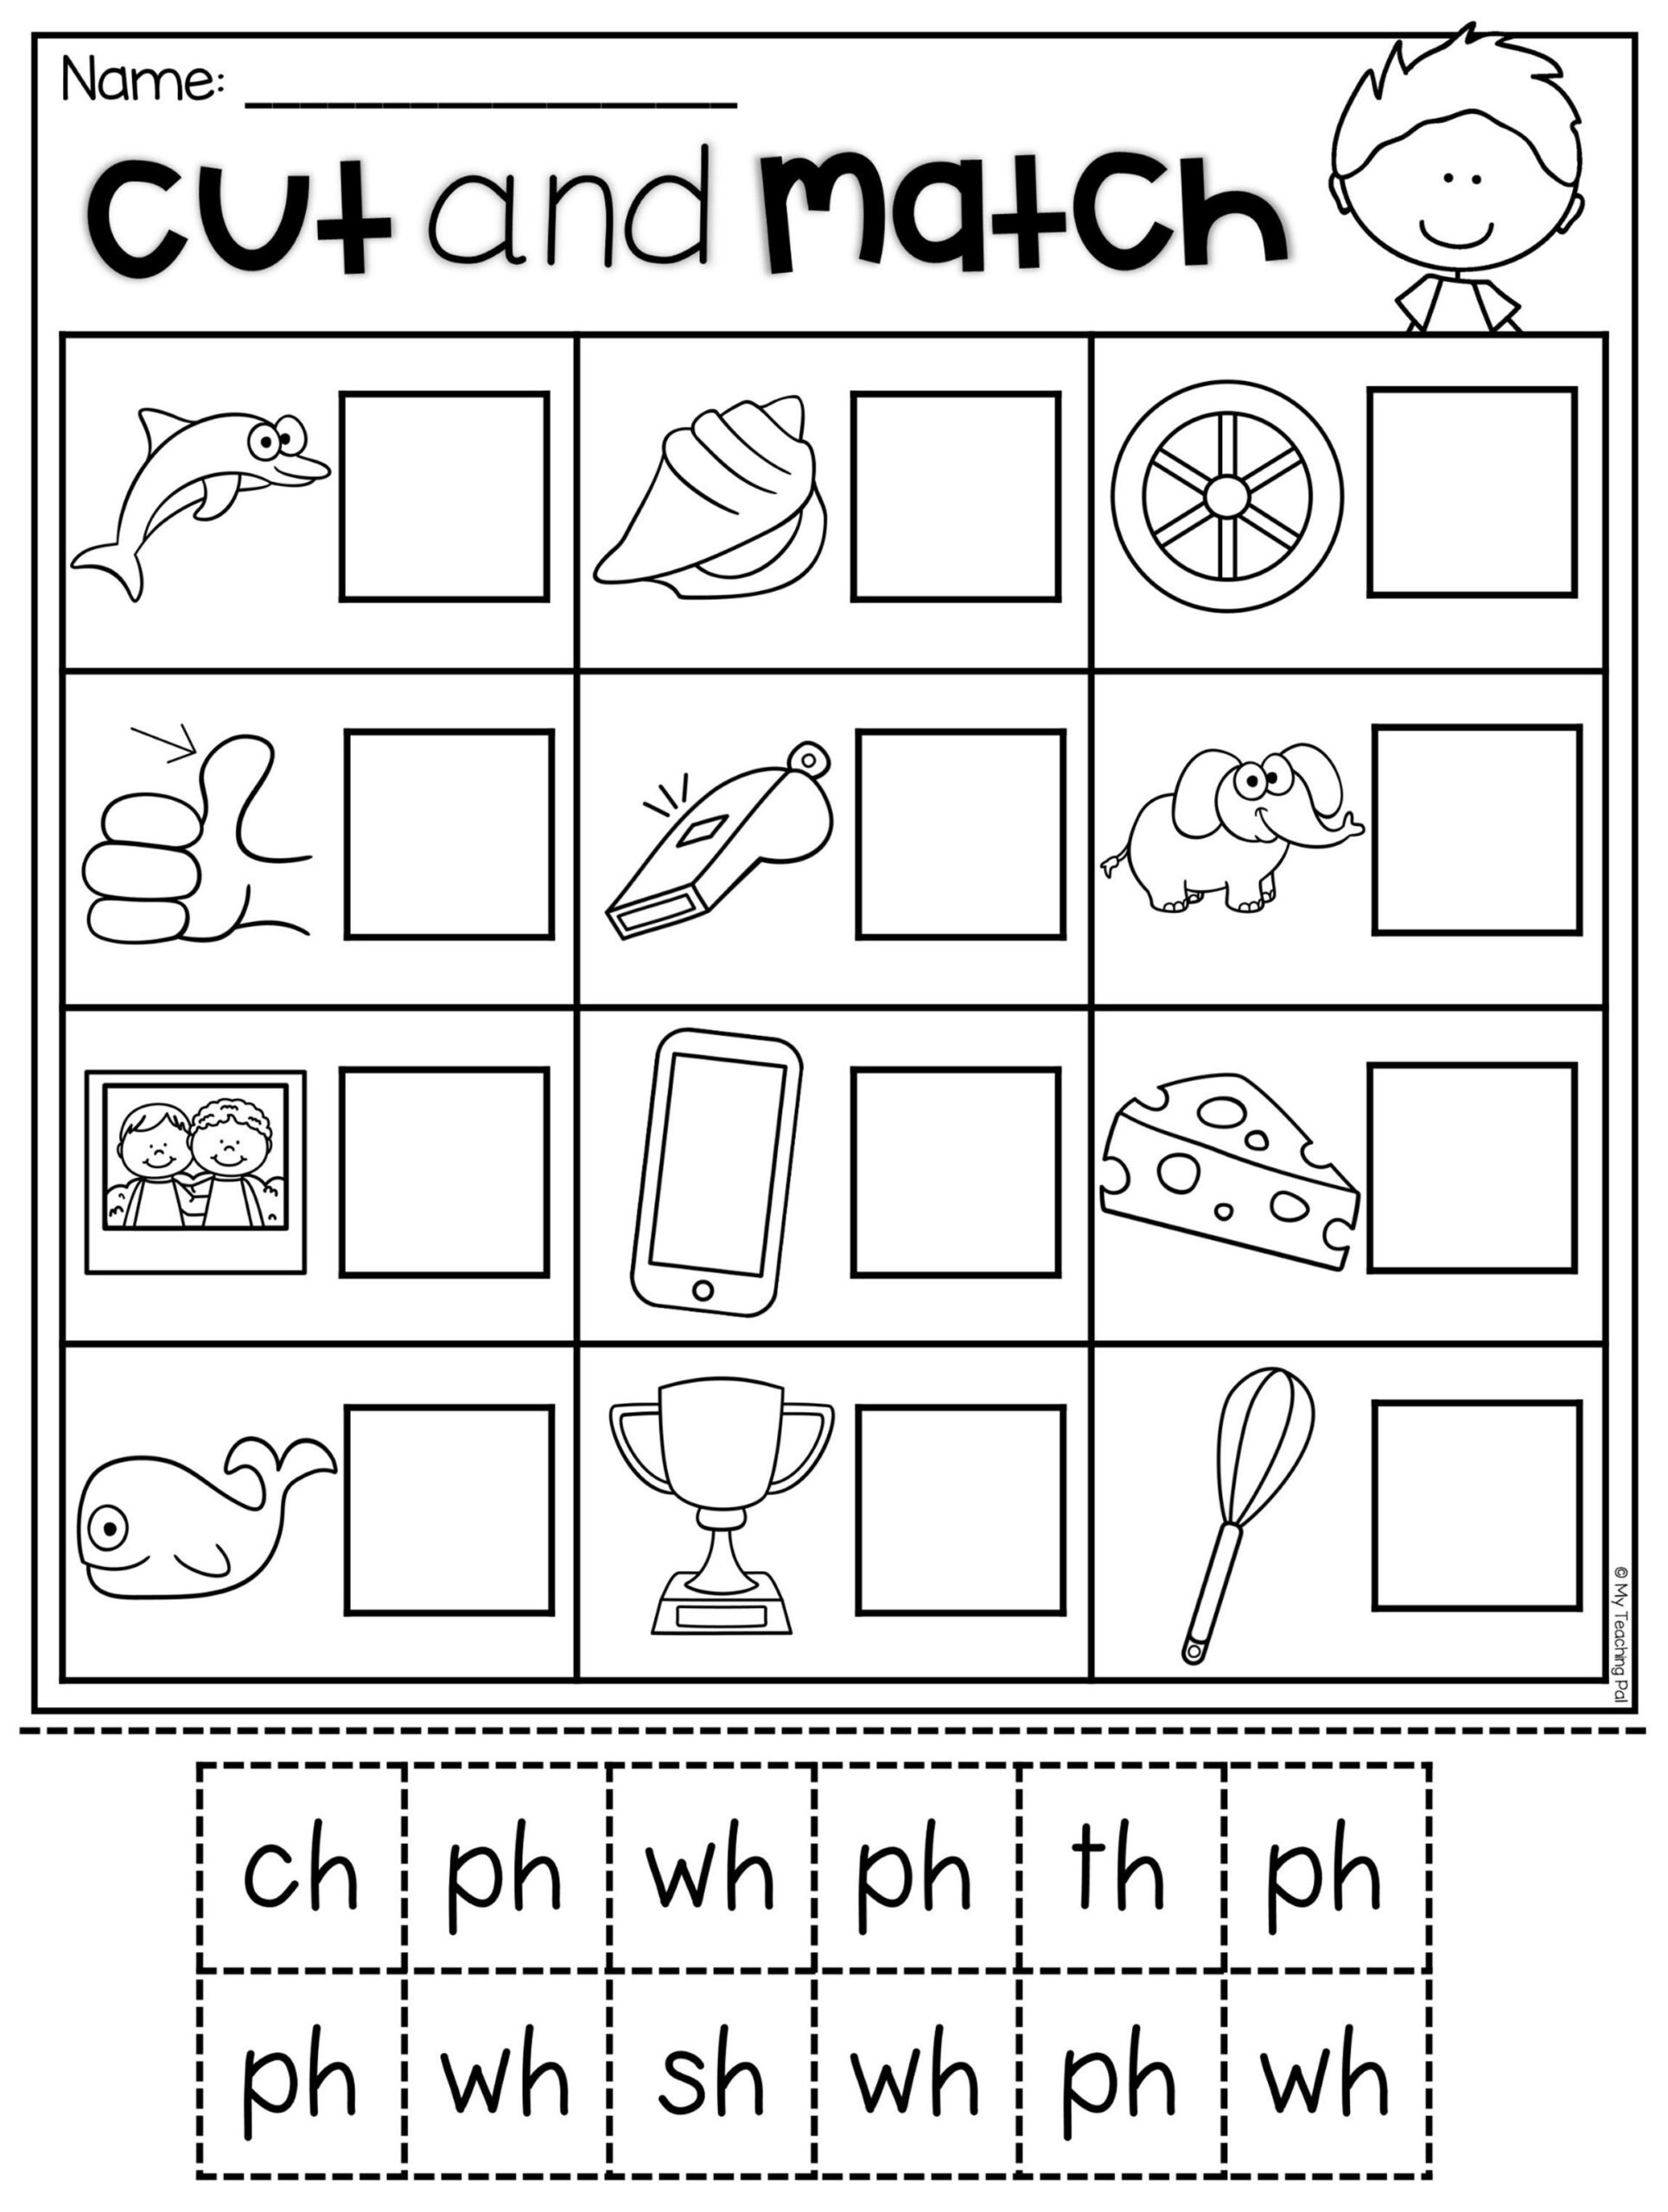 Digraph Worksheets for First Grade Digraph Worksheet Packet Ch Th Wh Ph Digraphs Worksheets